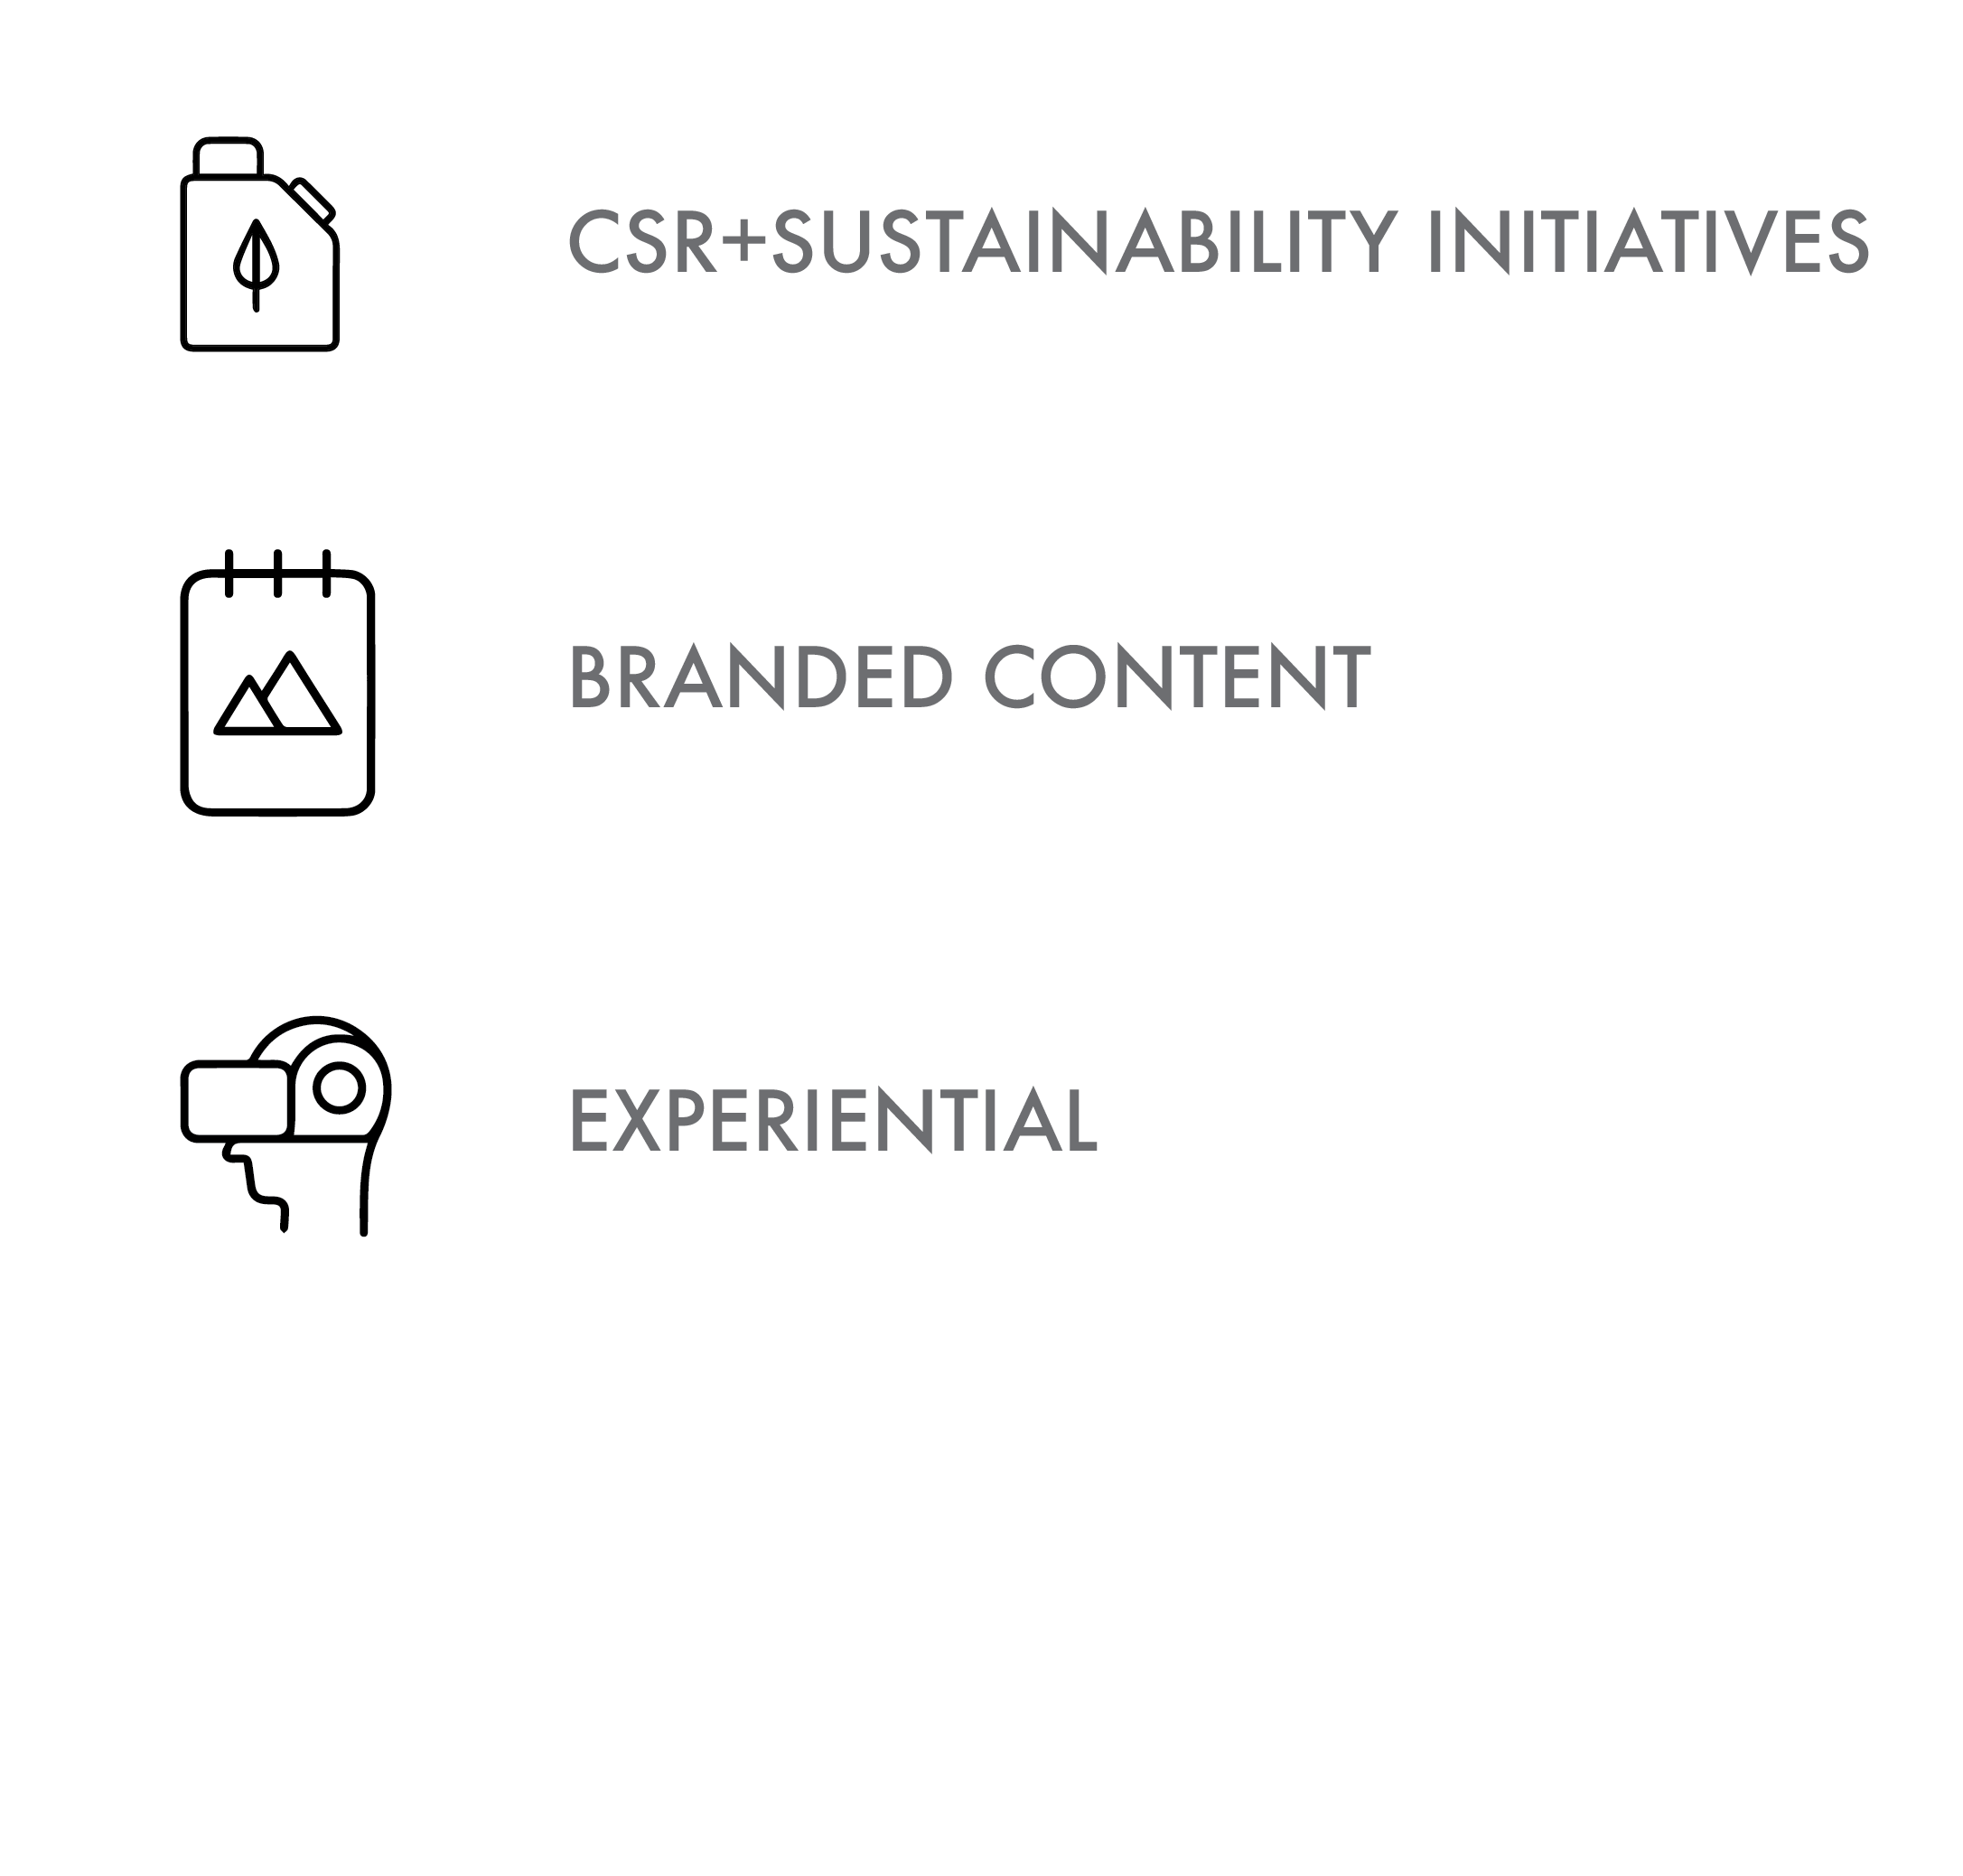 Manifesto-Icons-org-092618-09.png